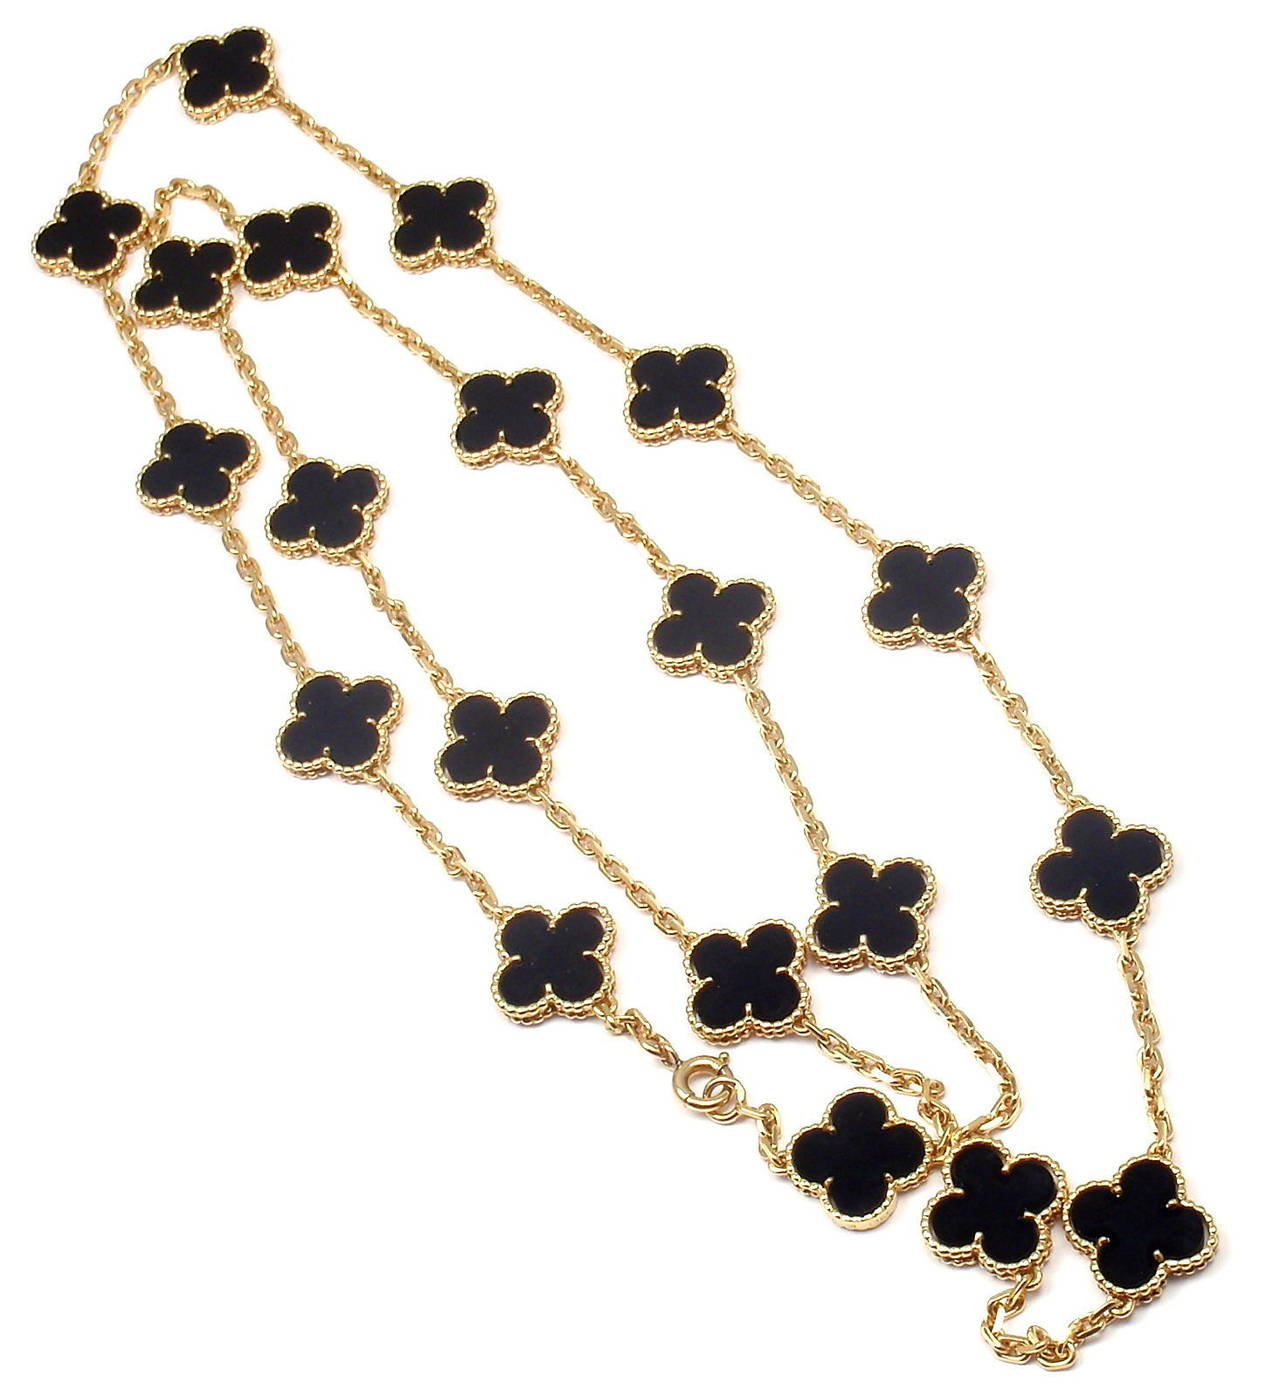 18k Yellow Gold Alhambra Twenty-Motif Black Onyx Necklace by 